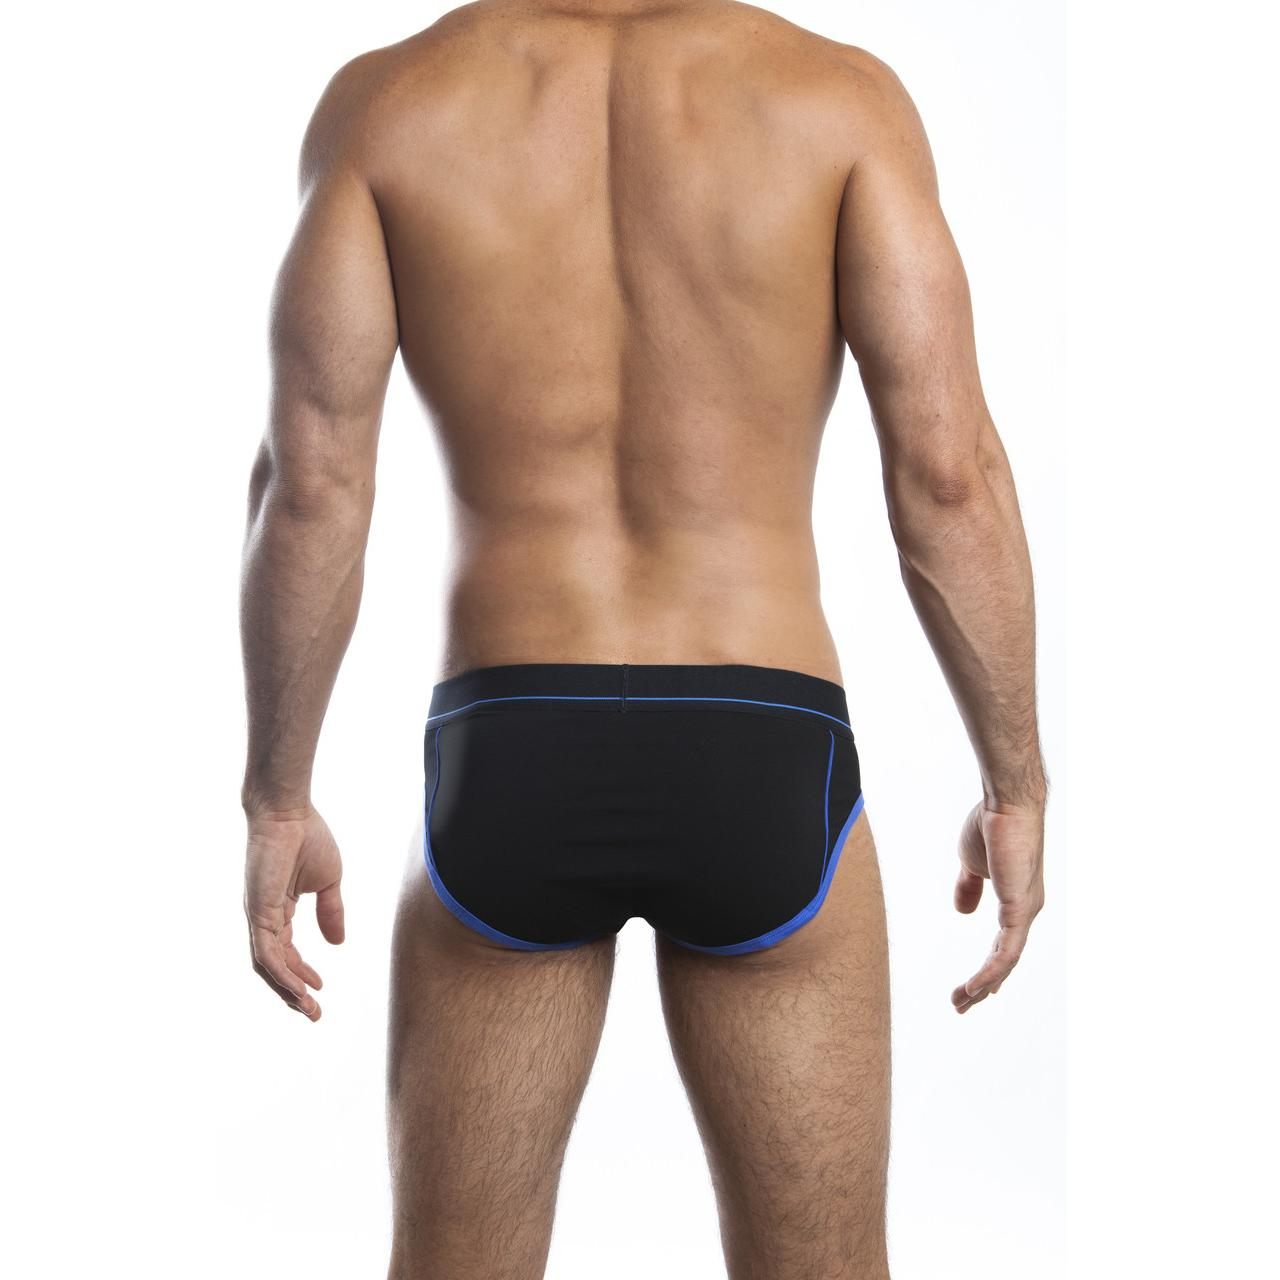 Jack Adams Navy Brief - Gay Men's Sex Toys - Adam's Toy Box